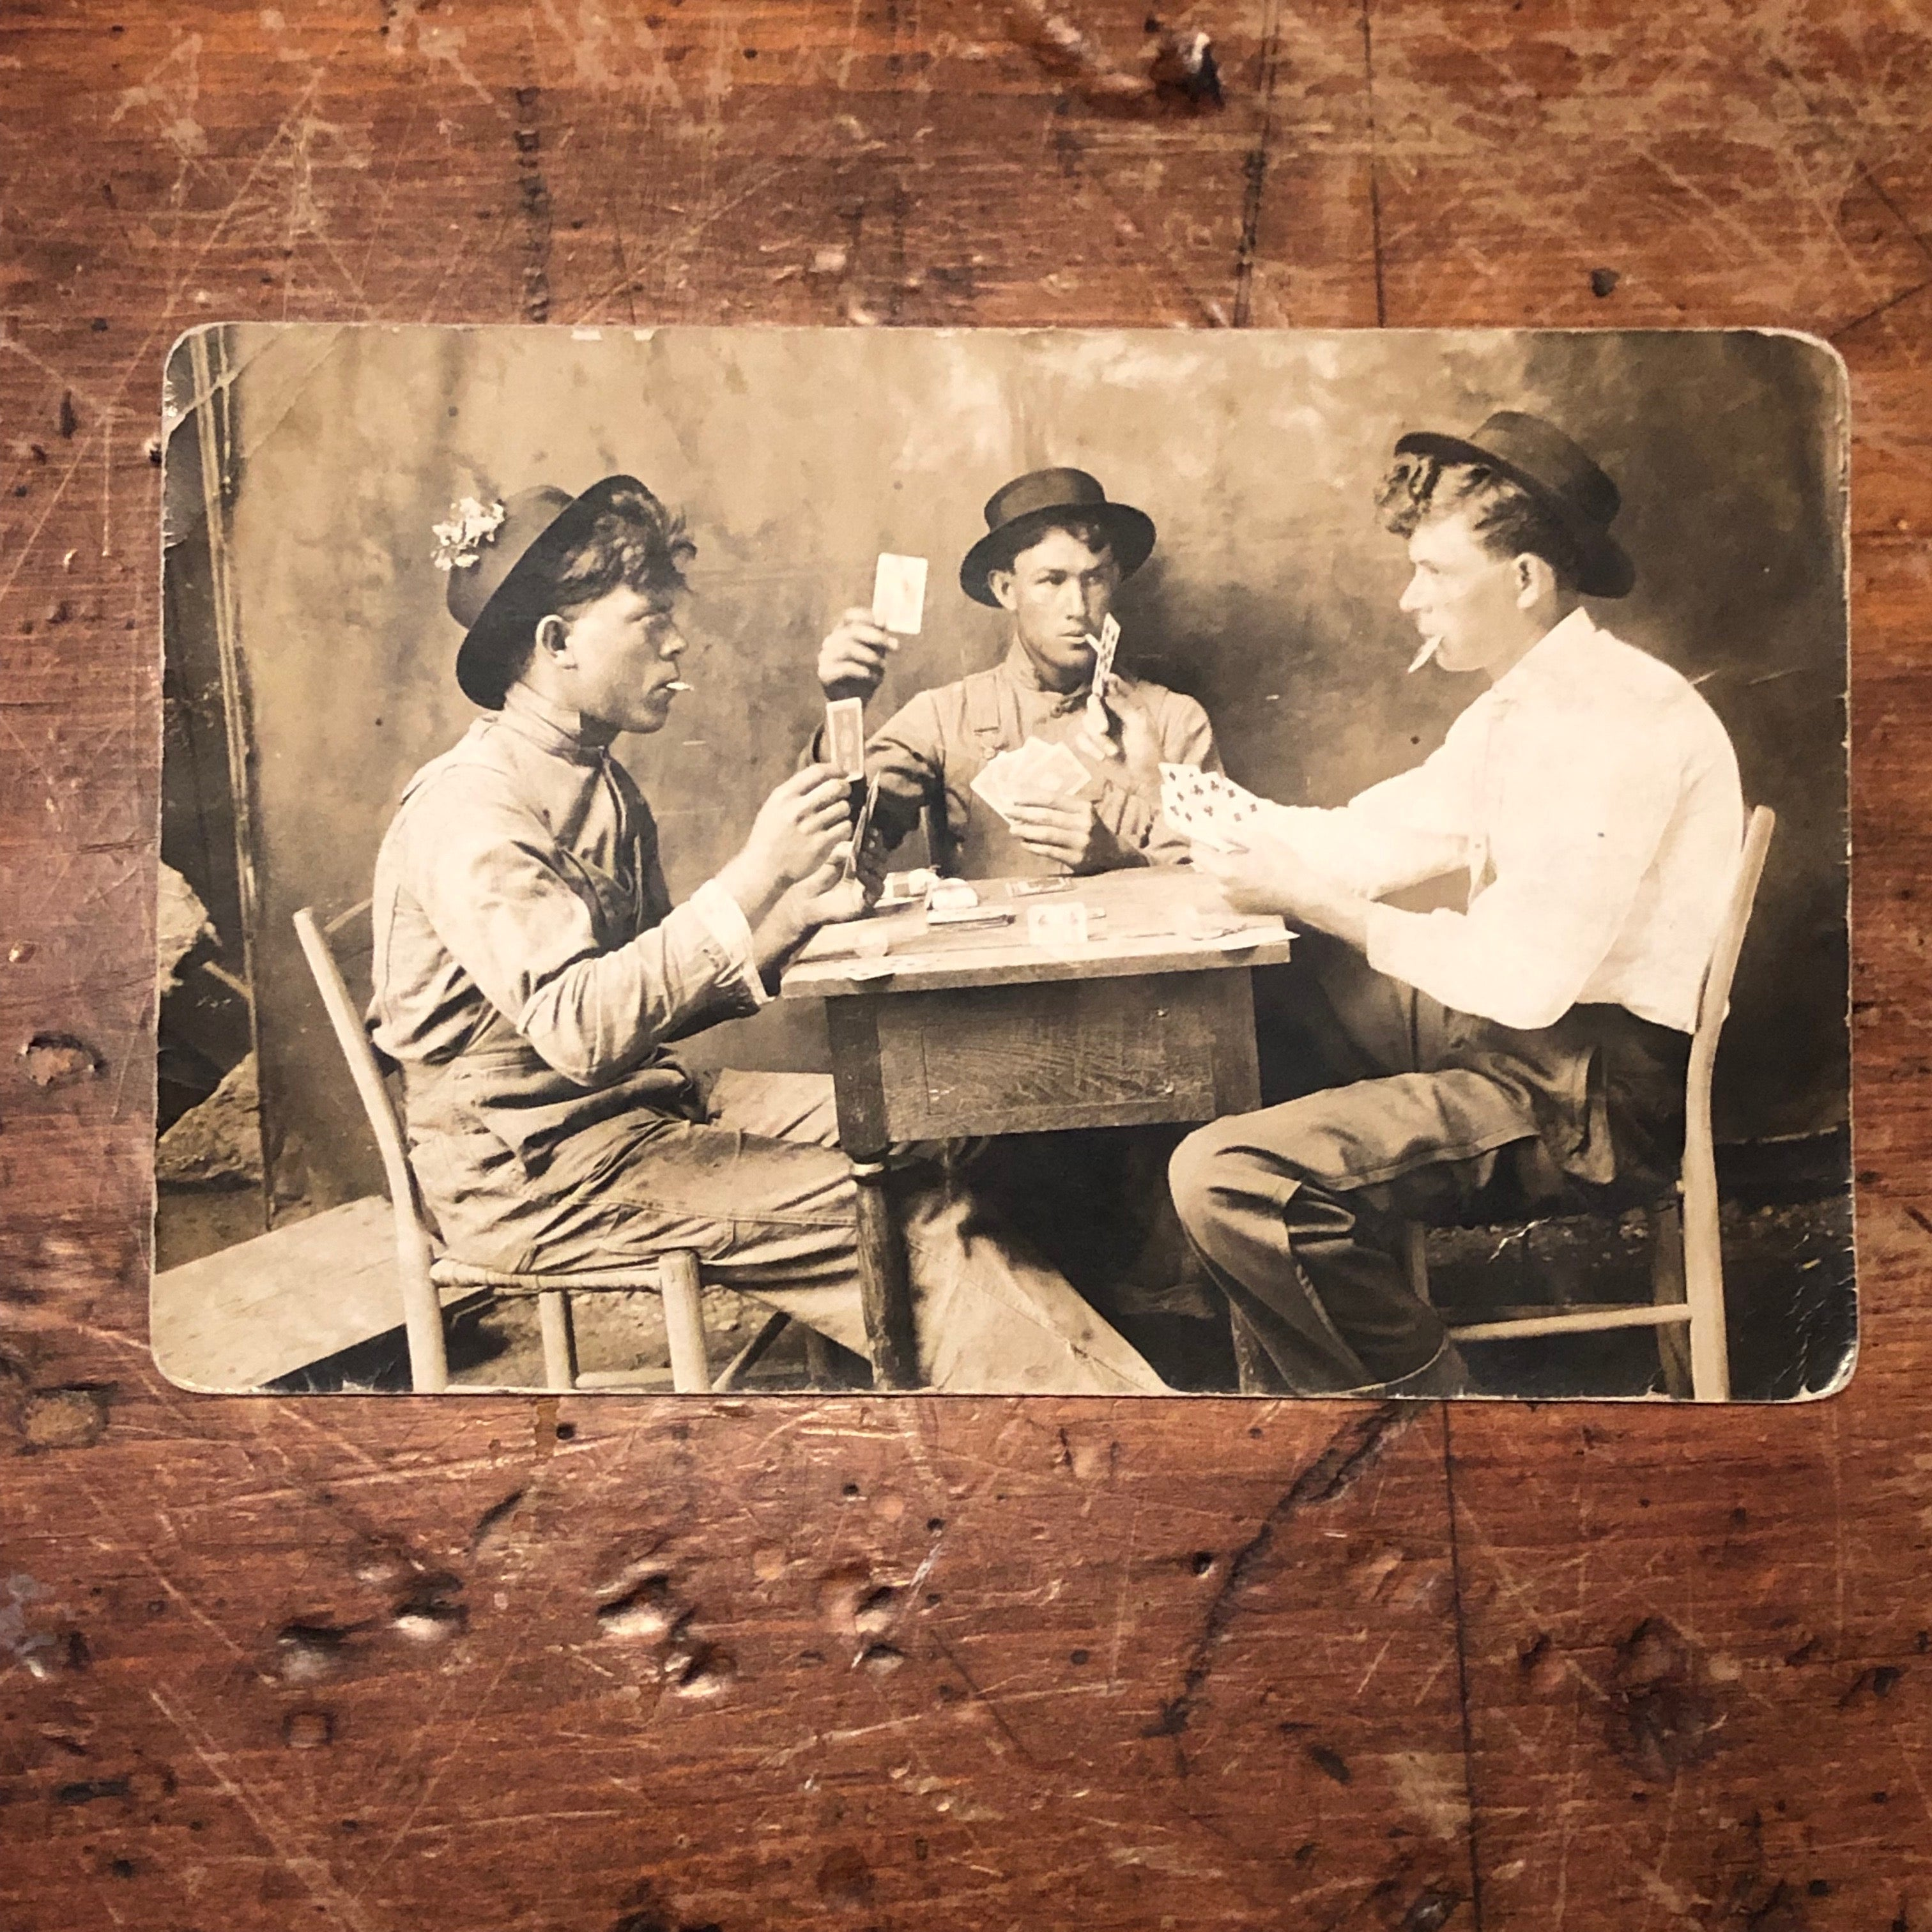 Antique RPPC of Gambling Card Game - Rare Real Photo Postcard from Early 1900s - Unusual Photo of Men's Workwear - Mancave Photography